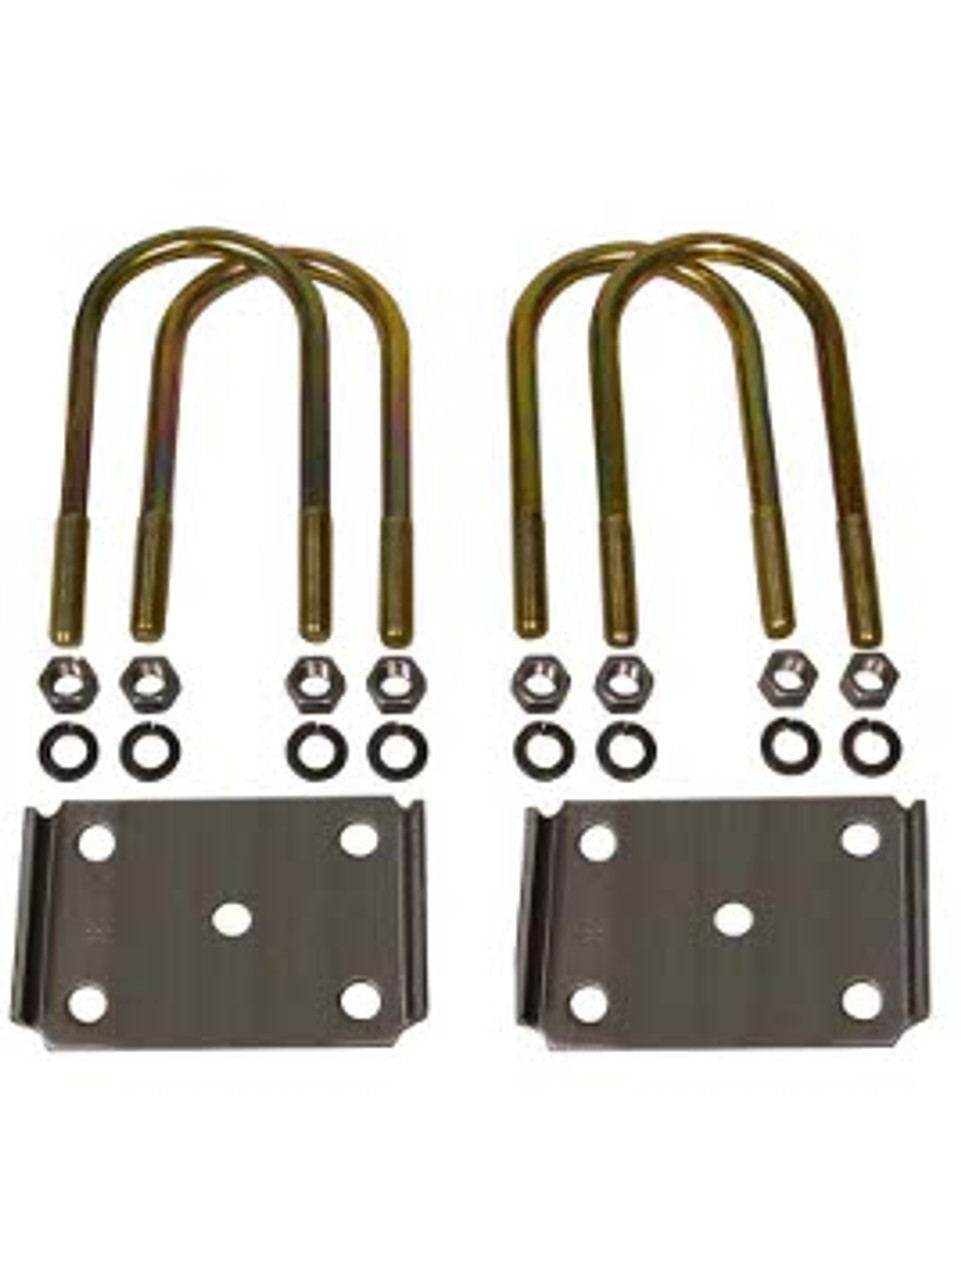 """238-625 --- 2-3/8"""" U-Bolts and Axle Plates for 1-3/4"""" Wide Springs"""